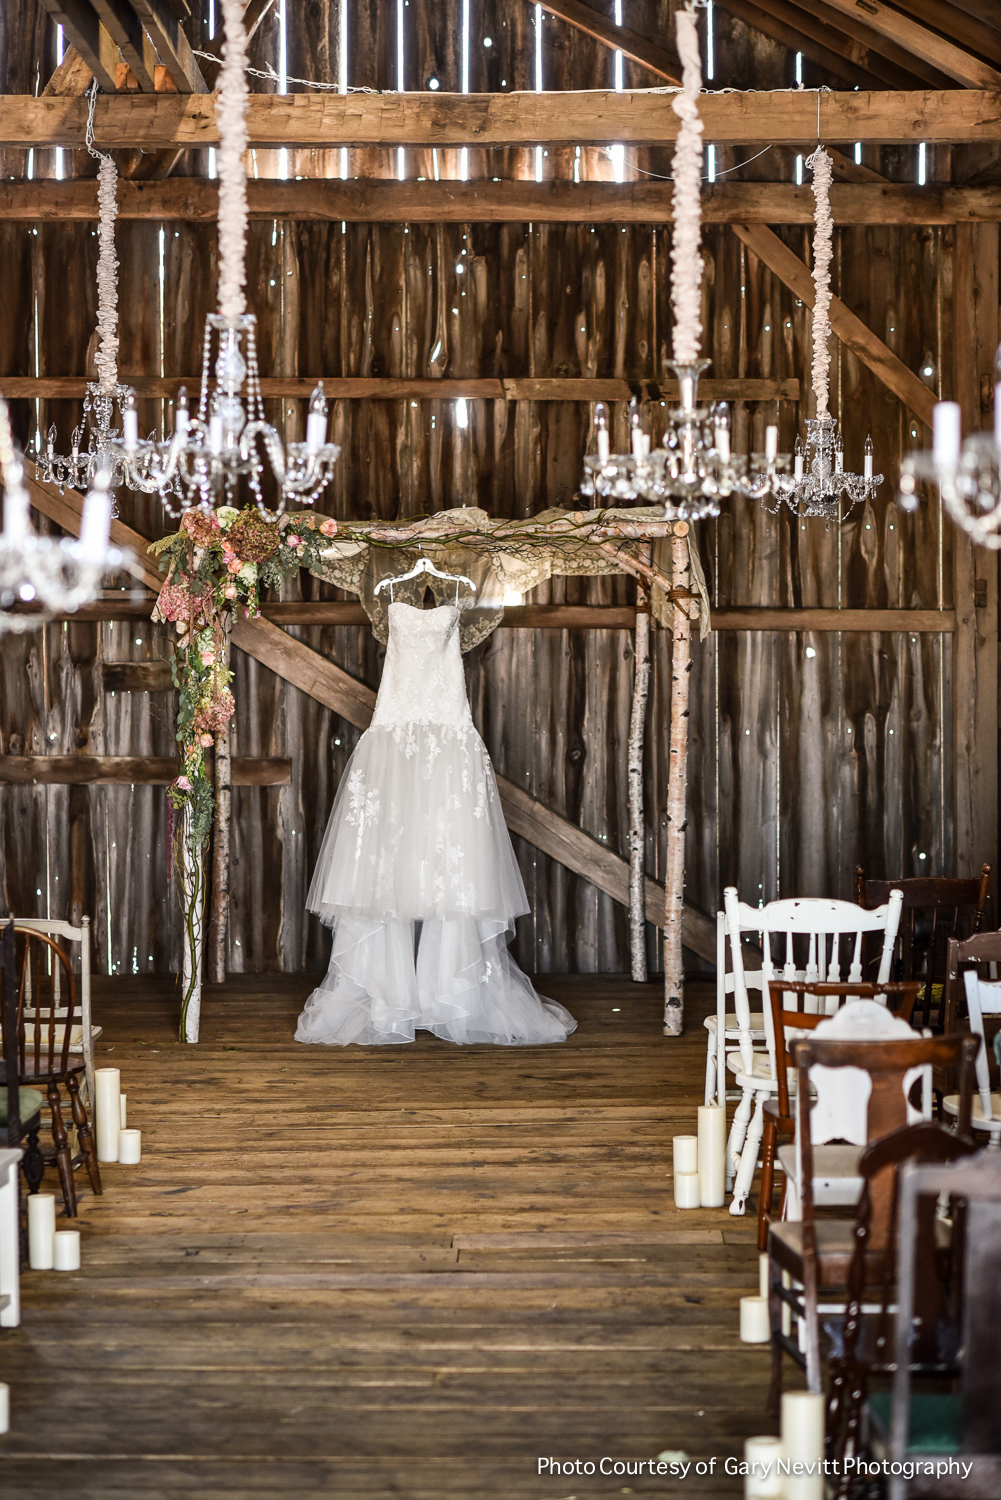 01 Philadelphia Wedding Floral Designer Enzoani Dress Birch Chuppah Chandeliers Barn Wedding.jpg